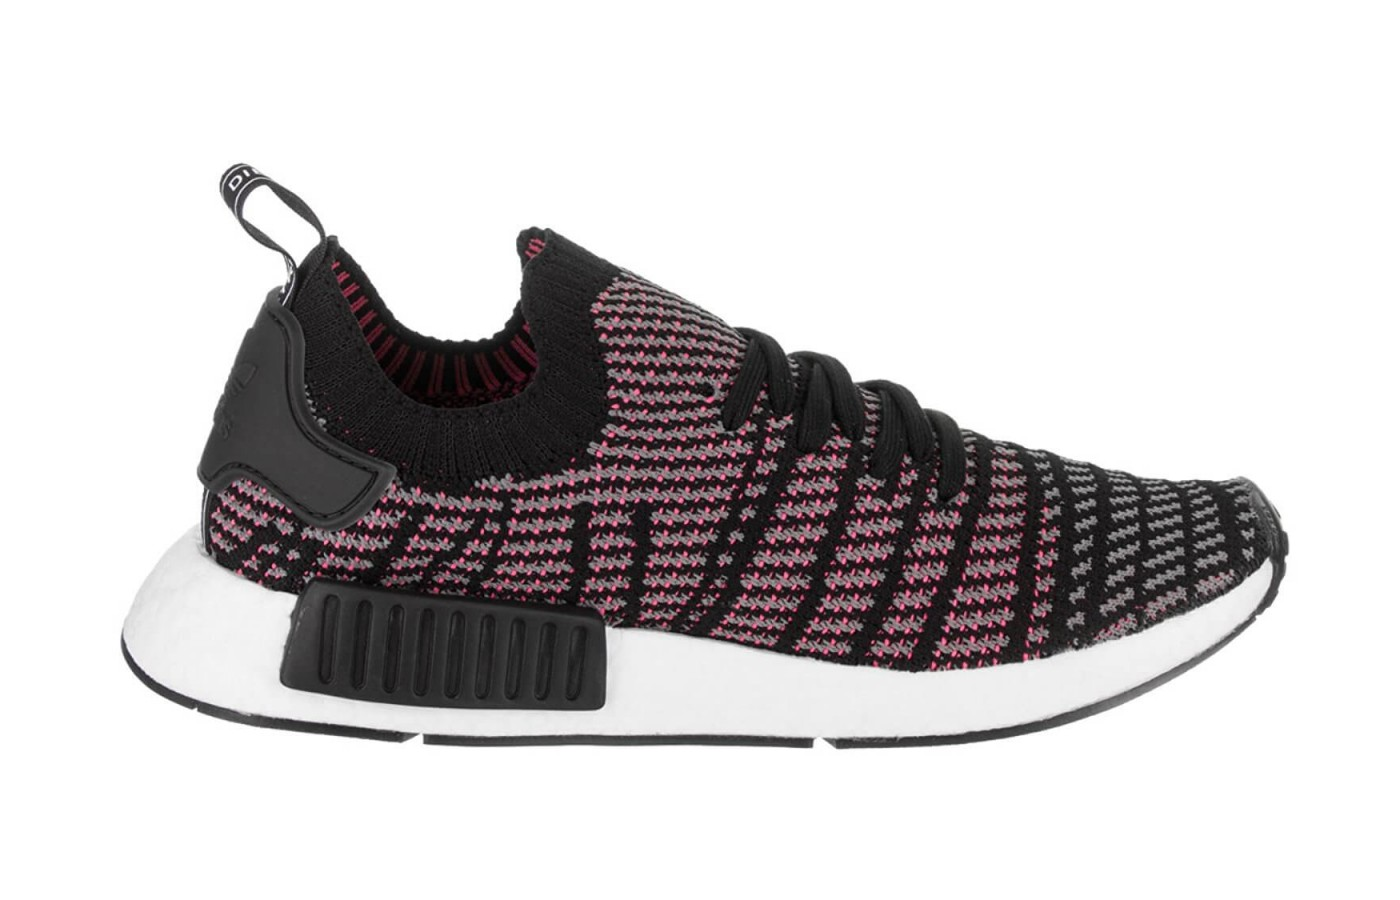 763fa01c3 ... The Adidas NMD R1 Stlt Primeknit features a Boost midsole ...